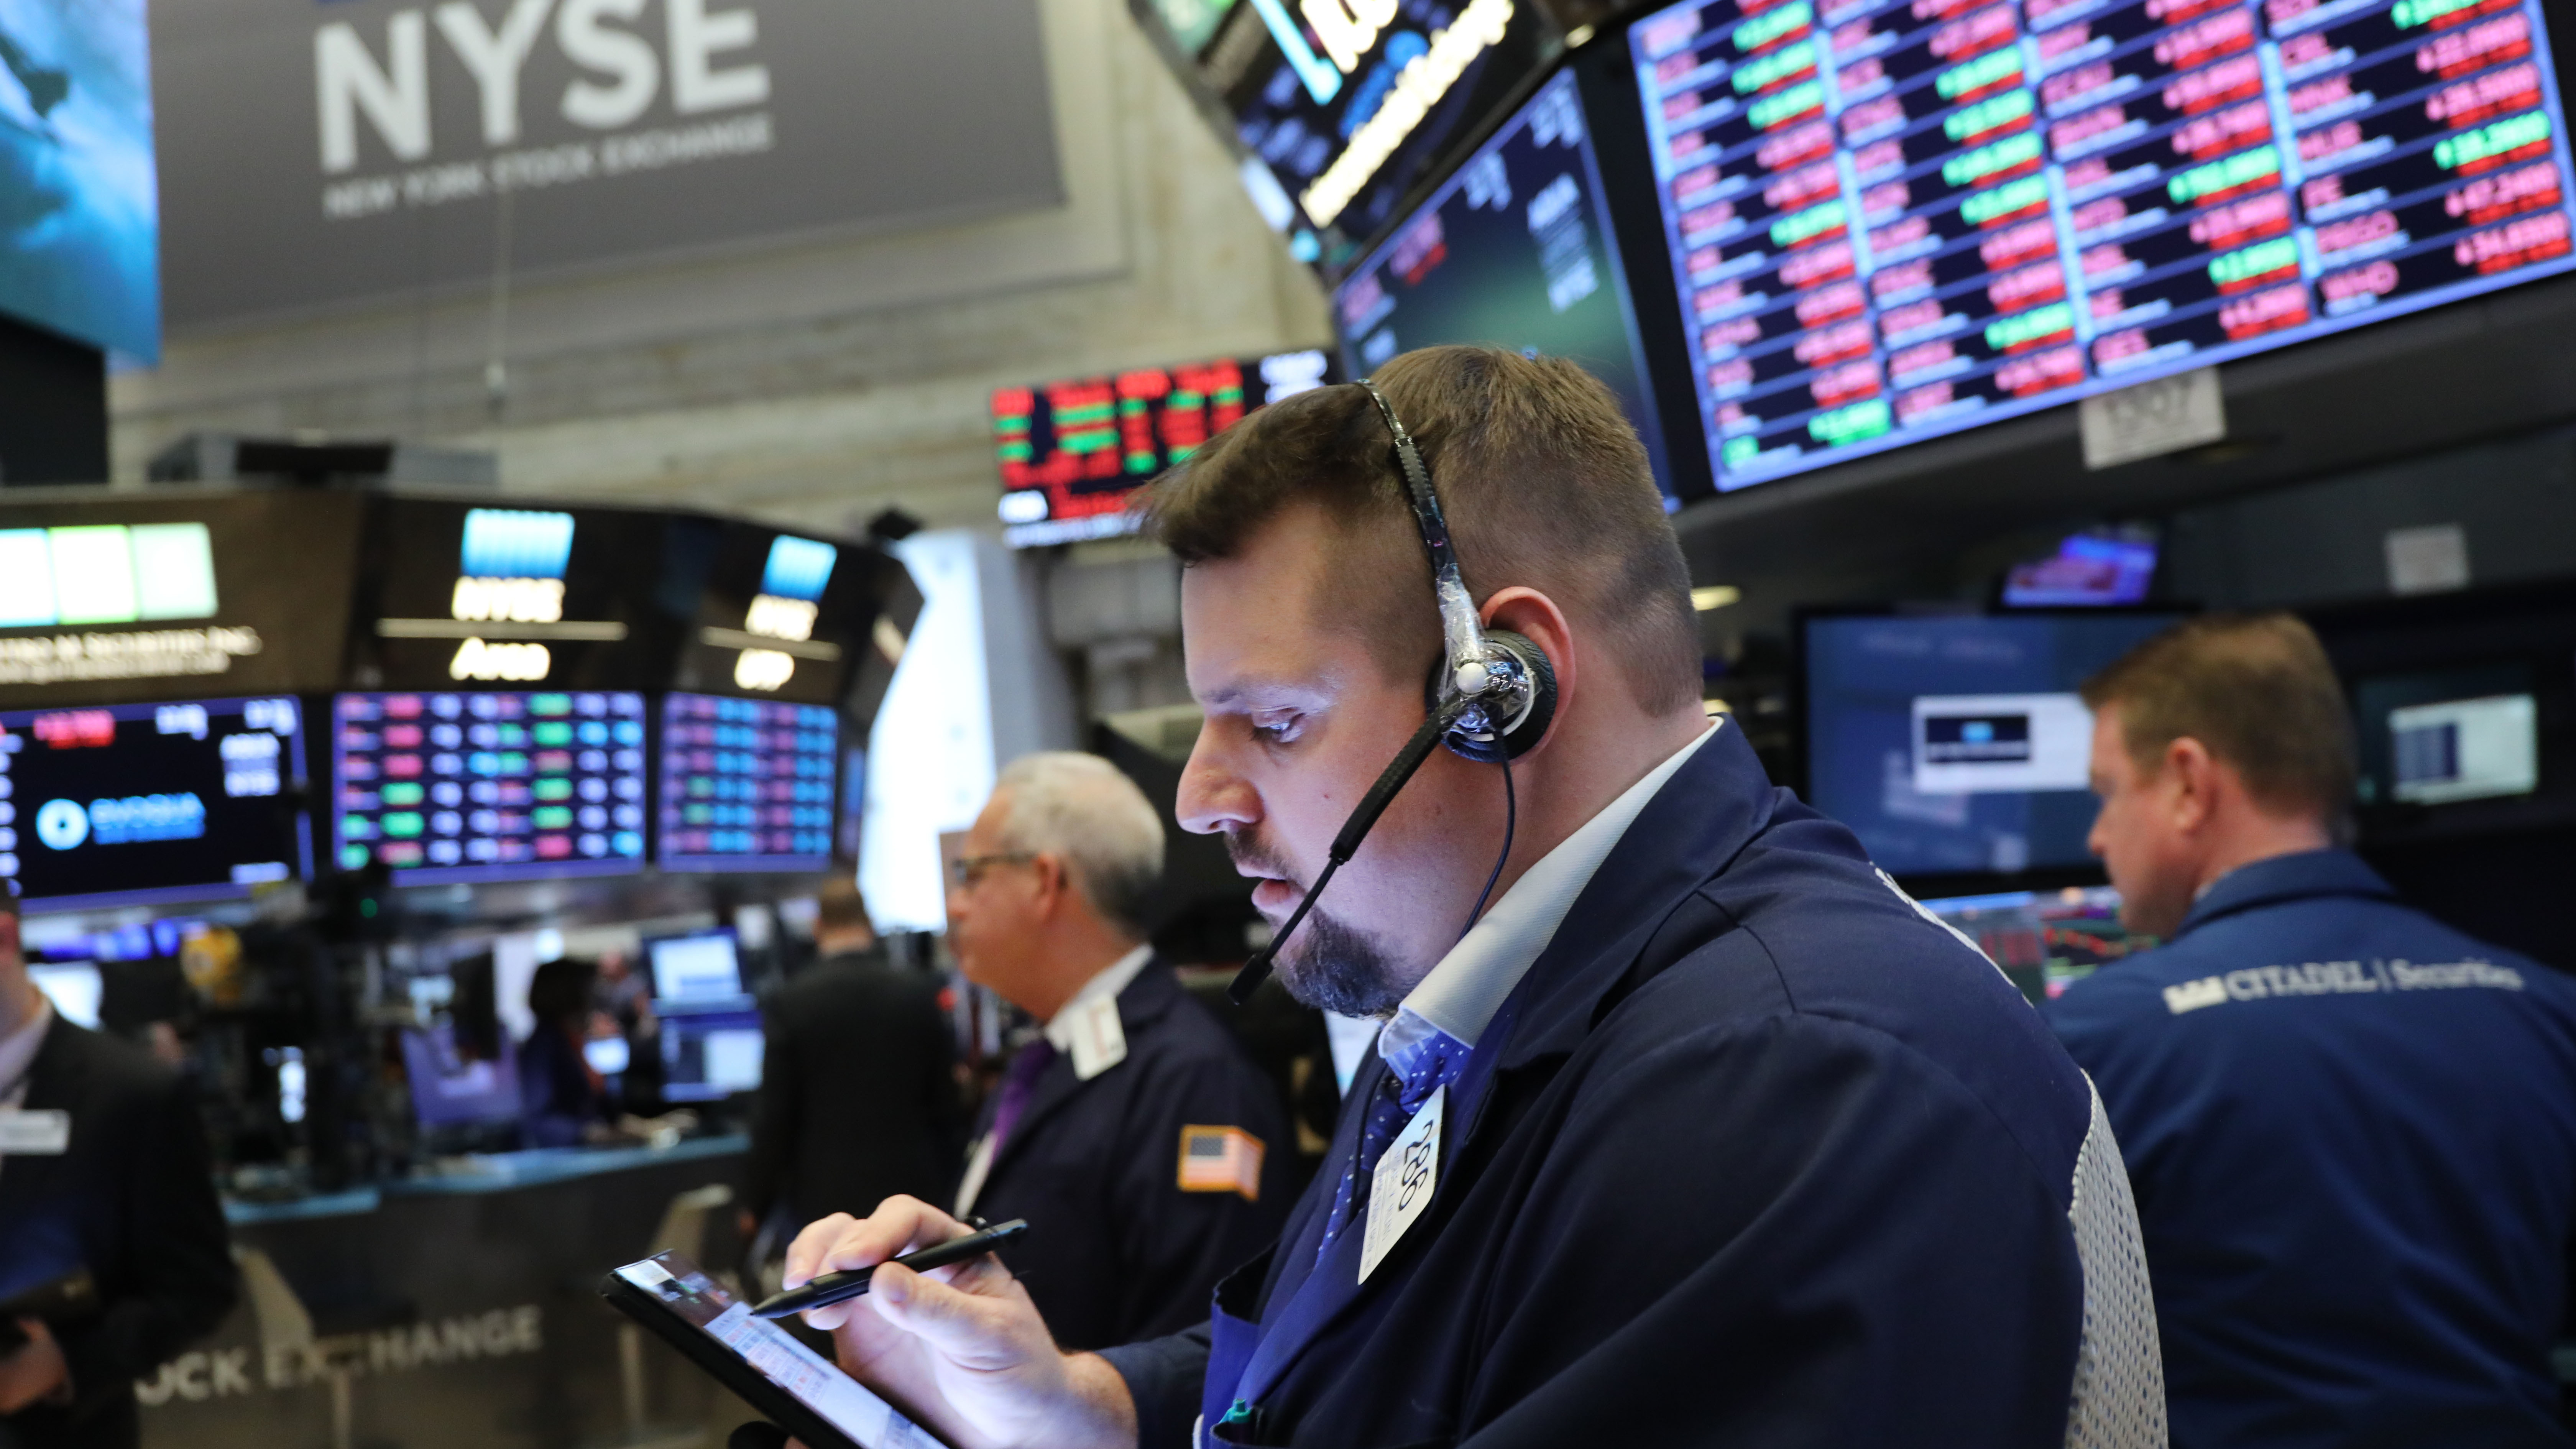 npr.org - Scott Horsley - Stocks Indexes Drop As Bond Market Flashes Recession Warning